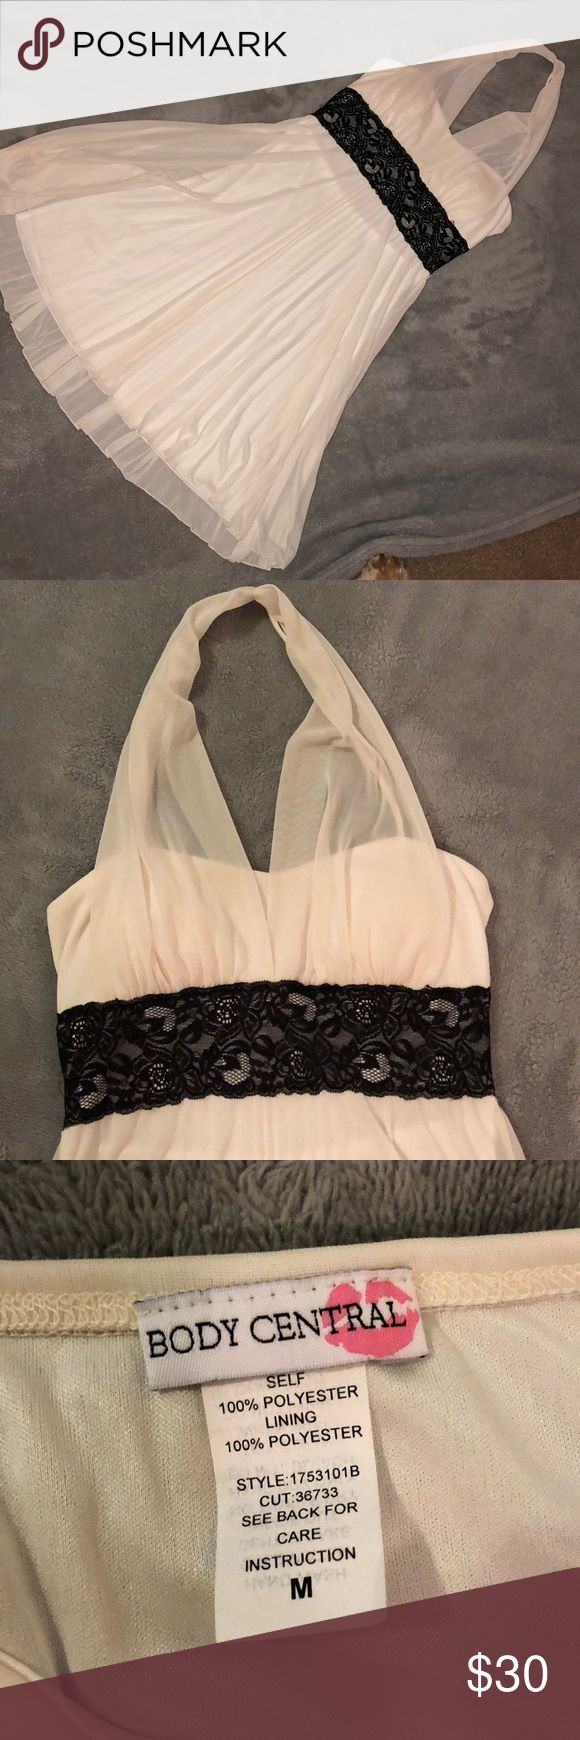 Formal Marilyn Monroe style dress This gorgeous halter dress is the perfect dress for any formal event. It's cream with a sheer outer lining. The bust area has lined cups. Very stretchy and comfortable. It's in good condition from a smoke free home. Body Central Dresses